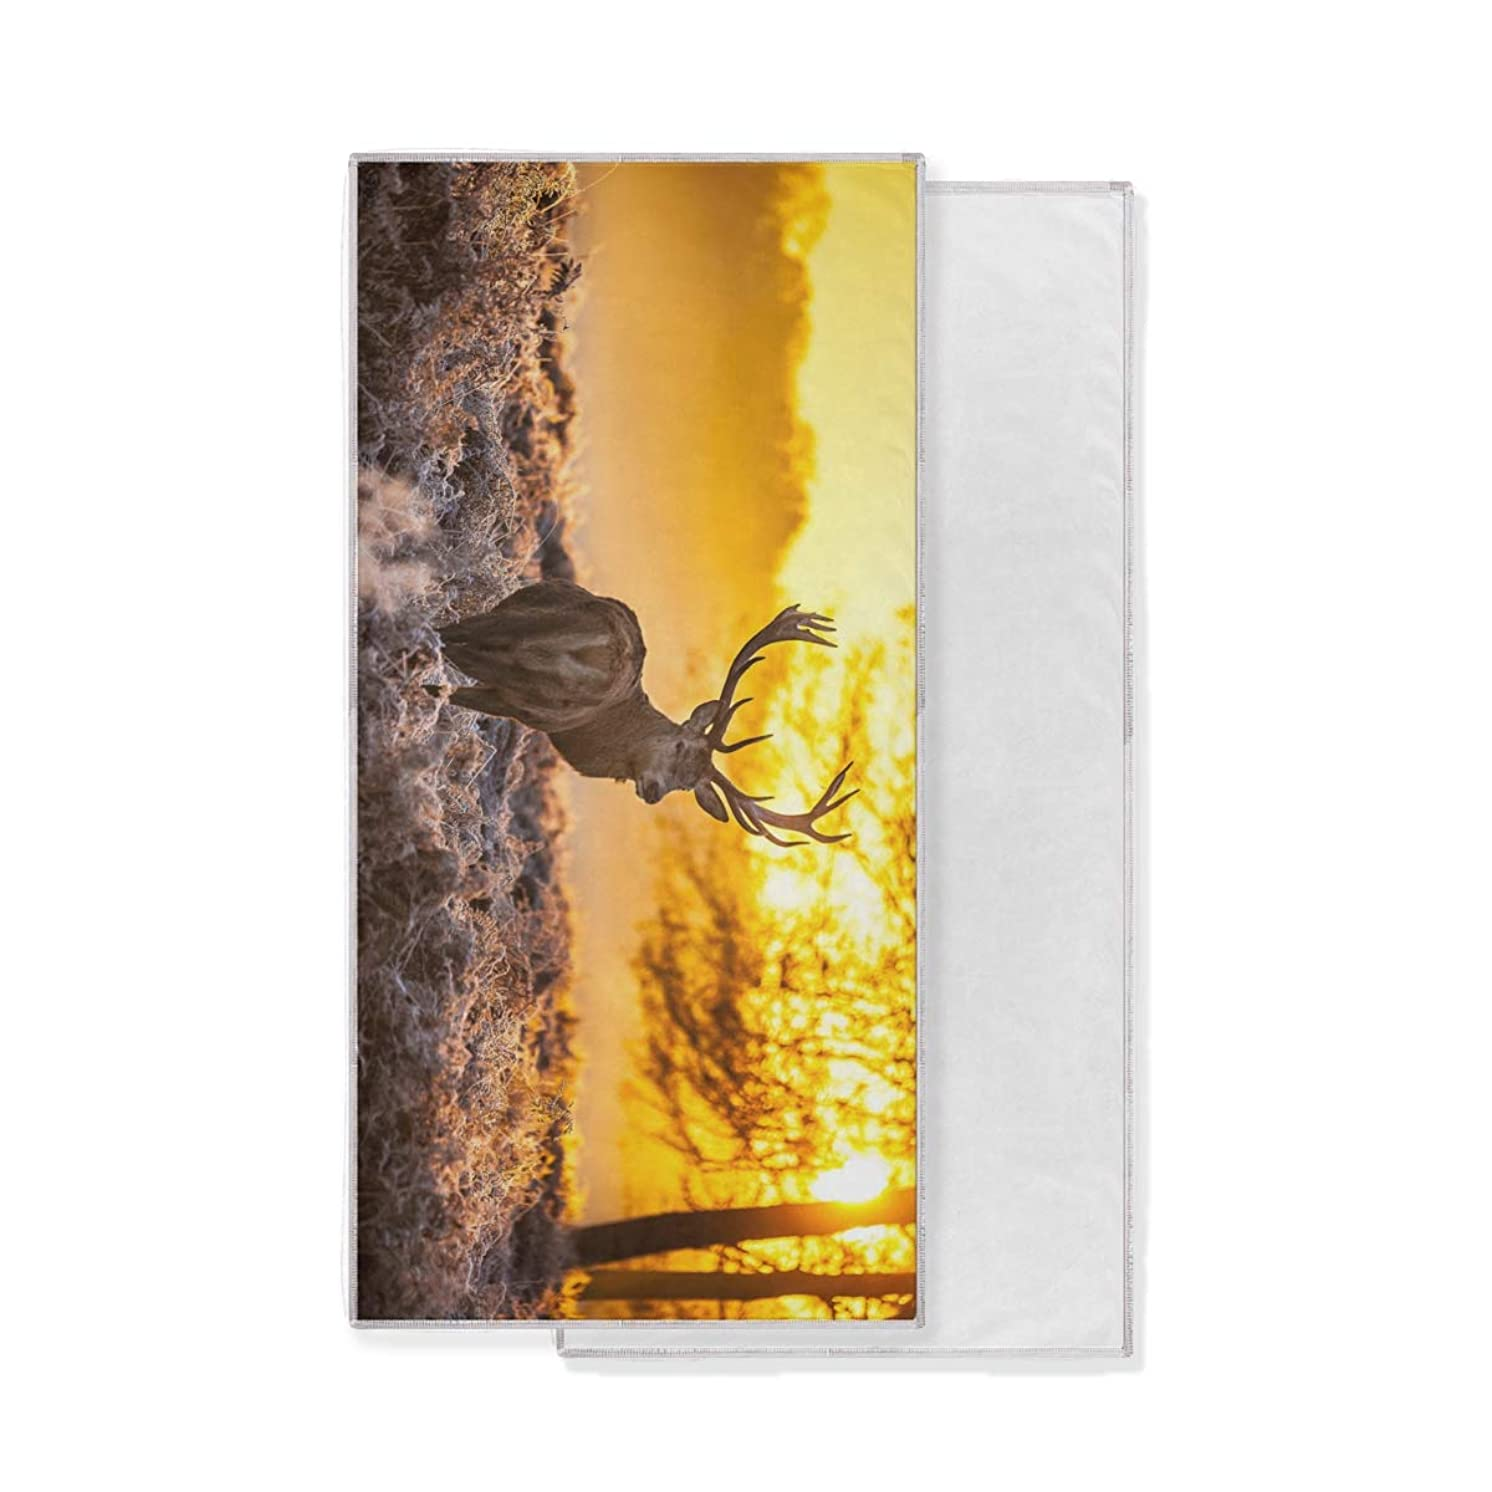 DOMIKING Quick Dry Travel Cooling Towels for Neck Elk Deer Sports Towel for Gym,Running,Hiking,Yoga,Camping, Swimming,Beach,Soft Breathable - 30x15 inch